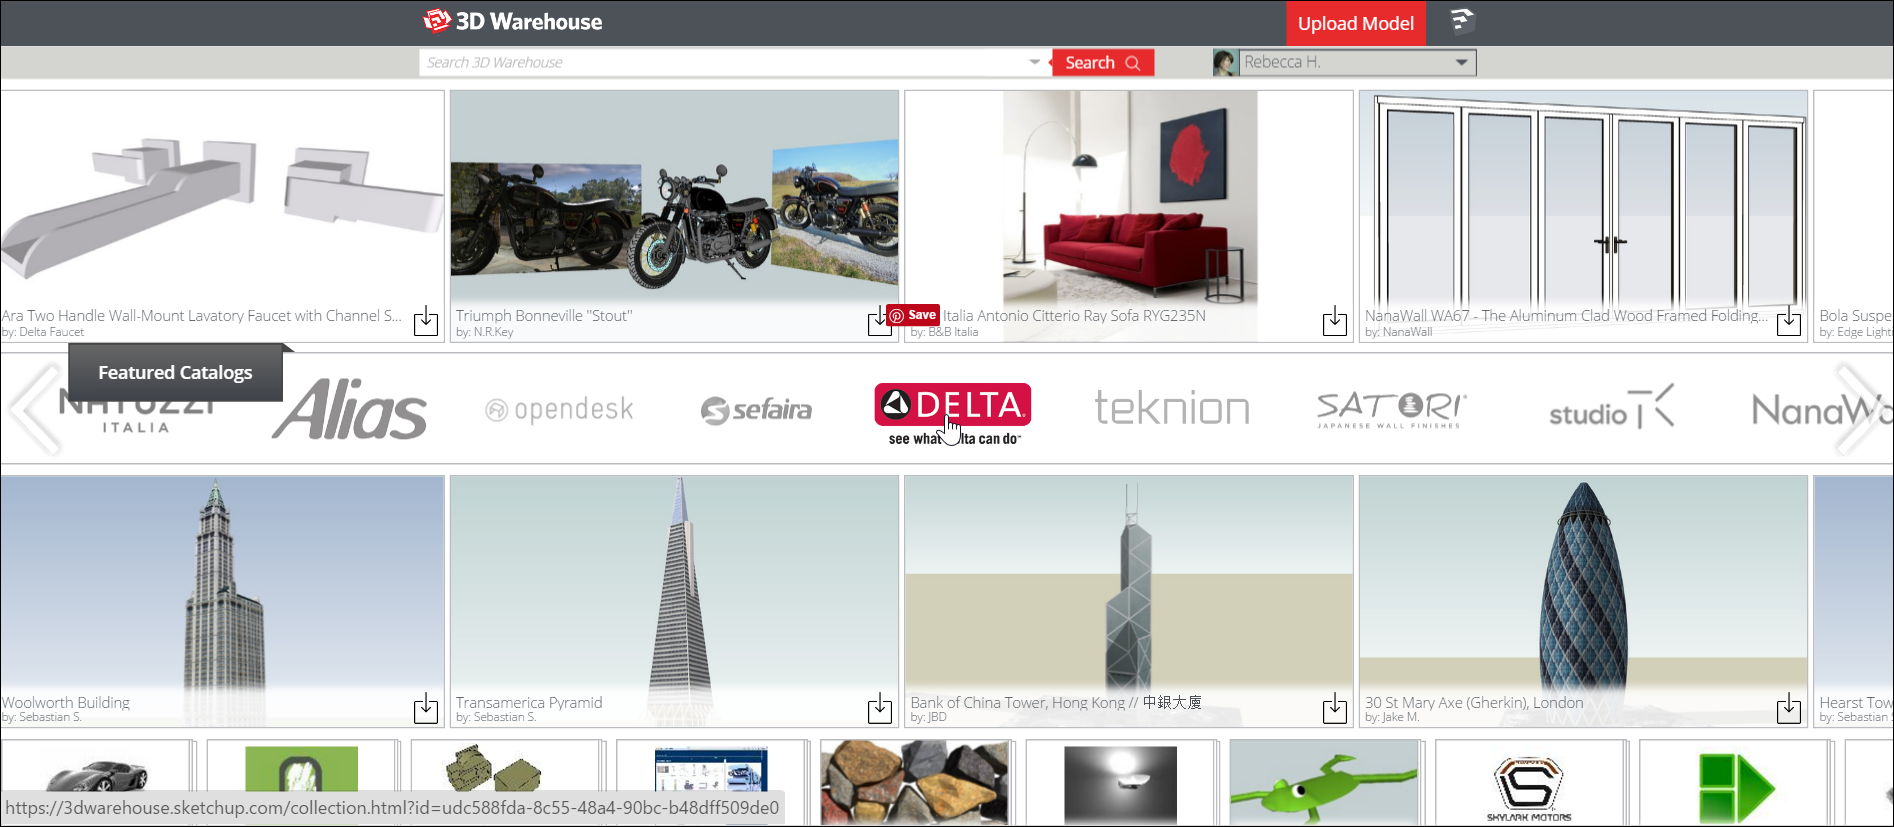 Promoting a 3D Warehouse catalog increases its visibility